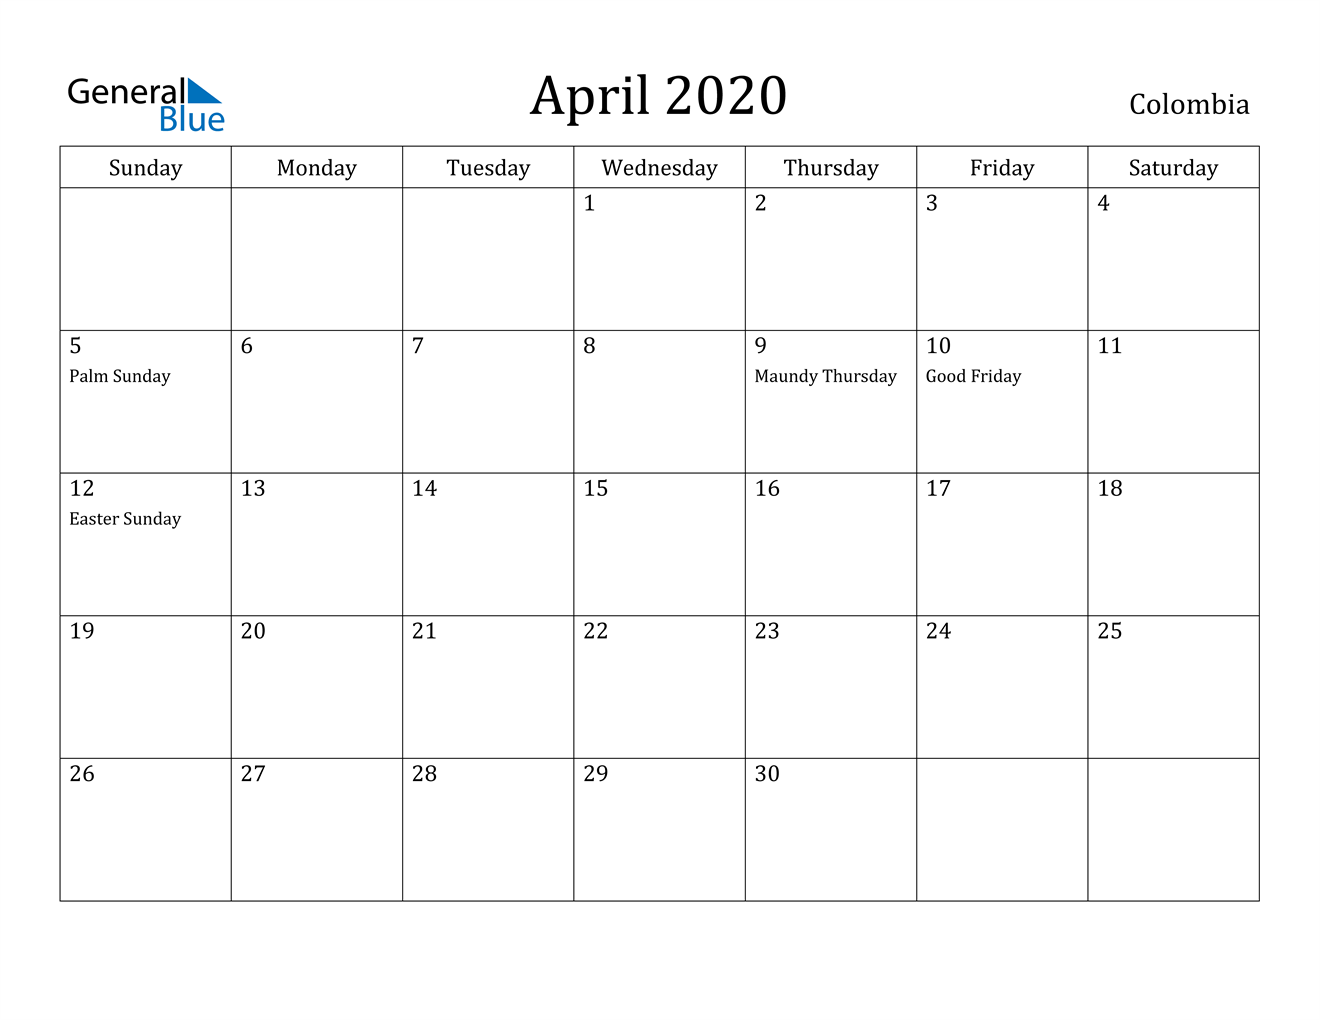 Image of April 2020 Colombia Calendar with Holidays Calendar